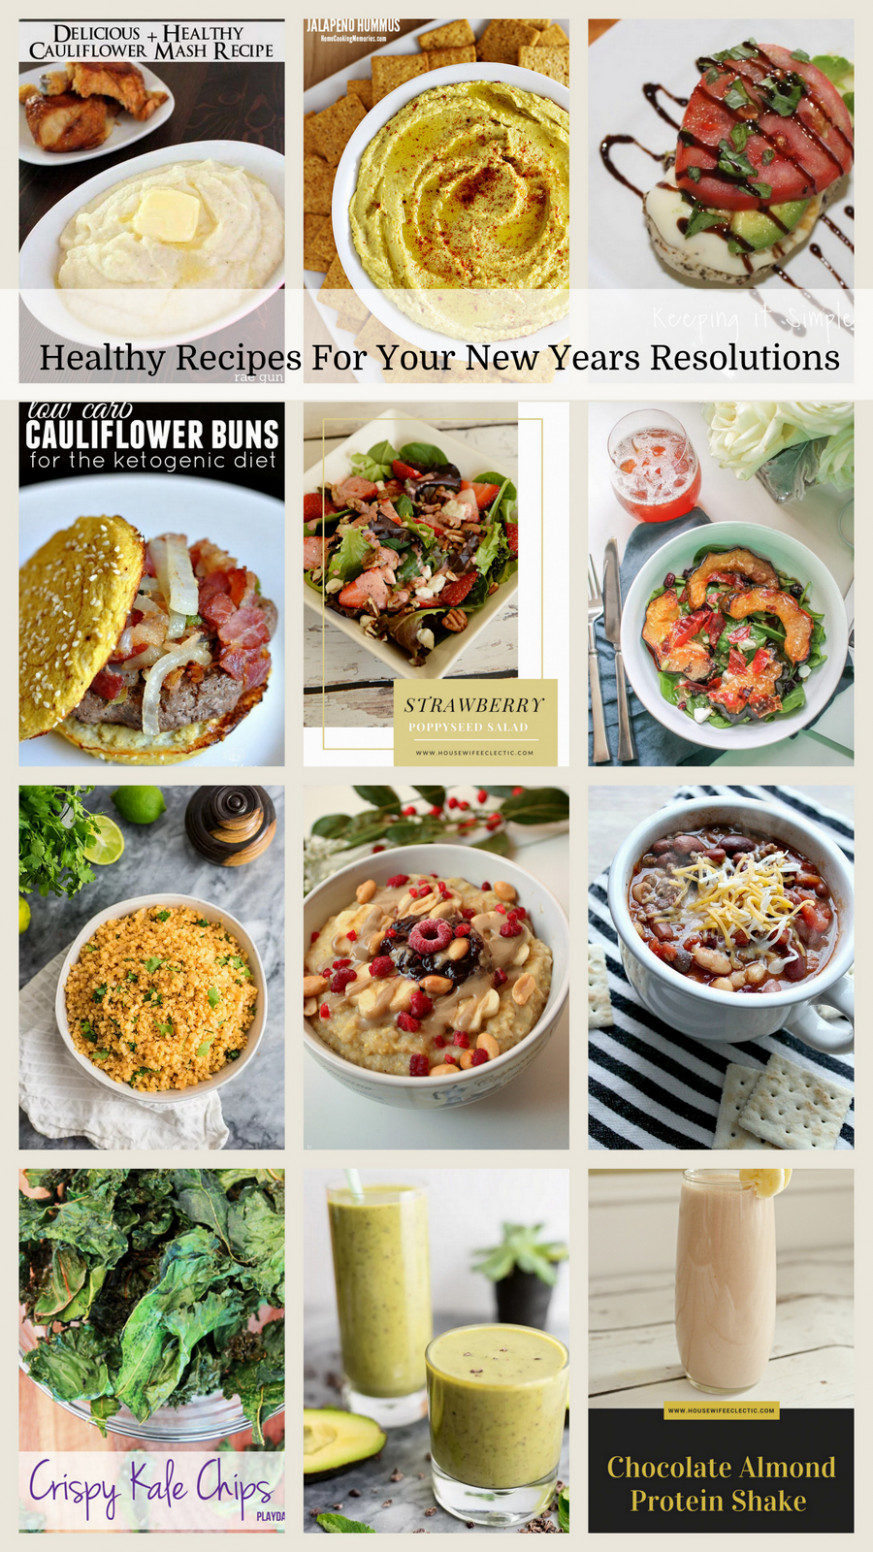 Healthy Recipes For Your New Years Resolutions - Housewife ...